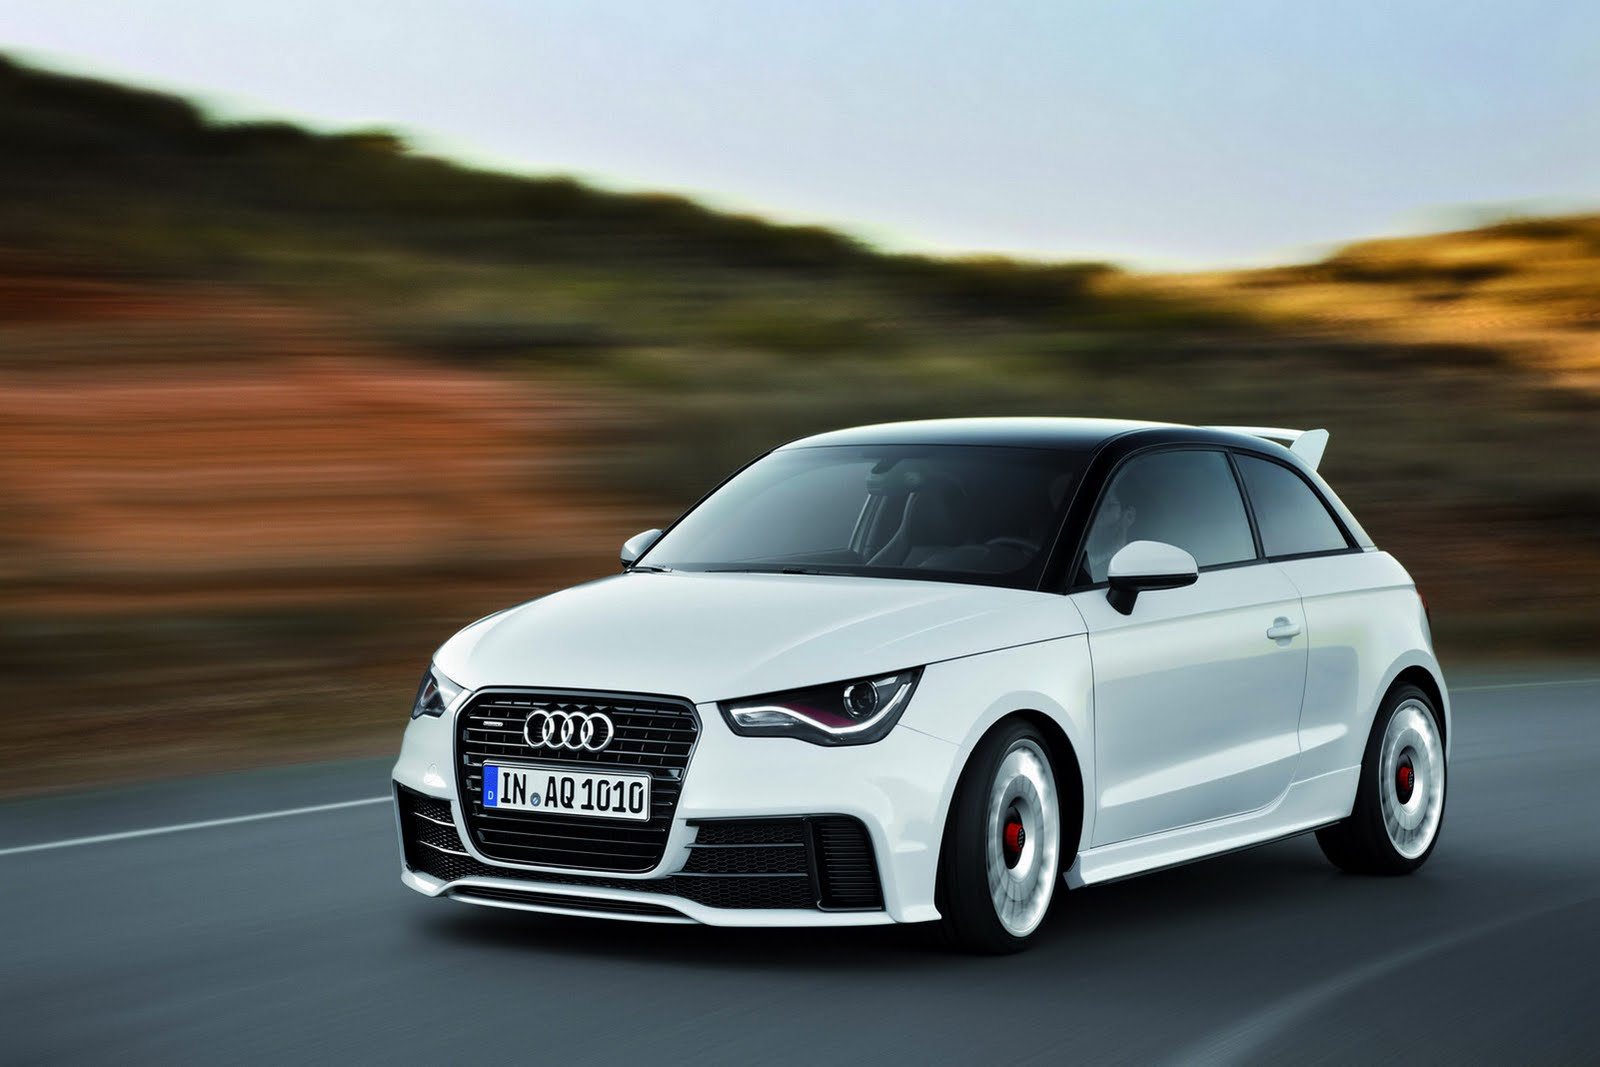 audi launches limited editon a1 quattro hot hatch. Black Bedroom Furniture Sets. Home Design Ideas